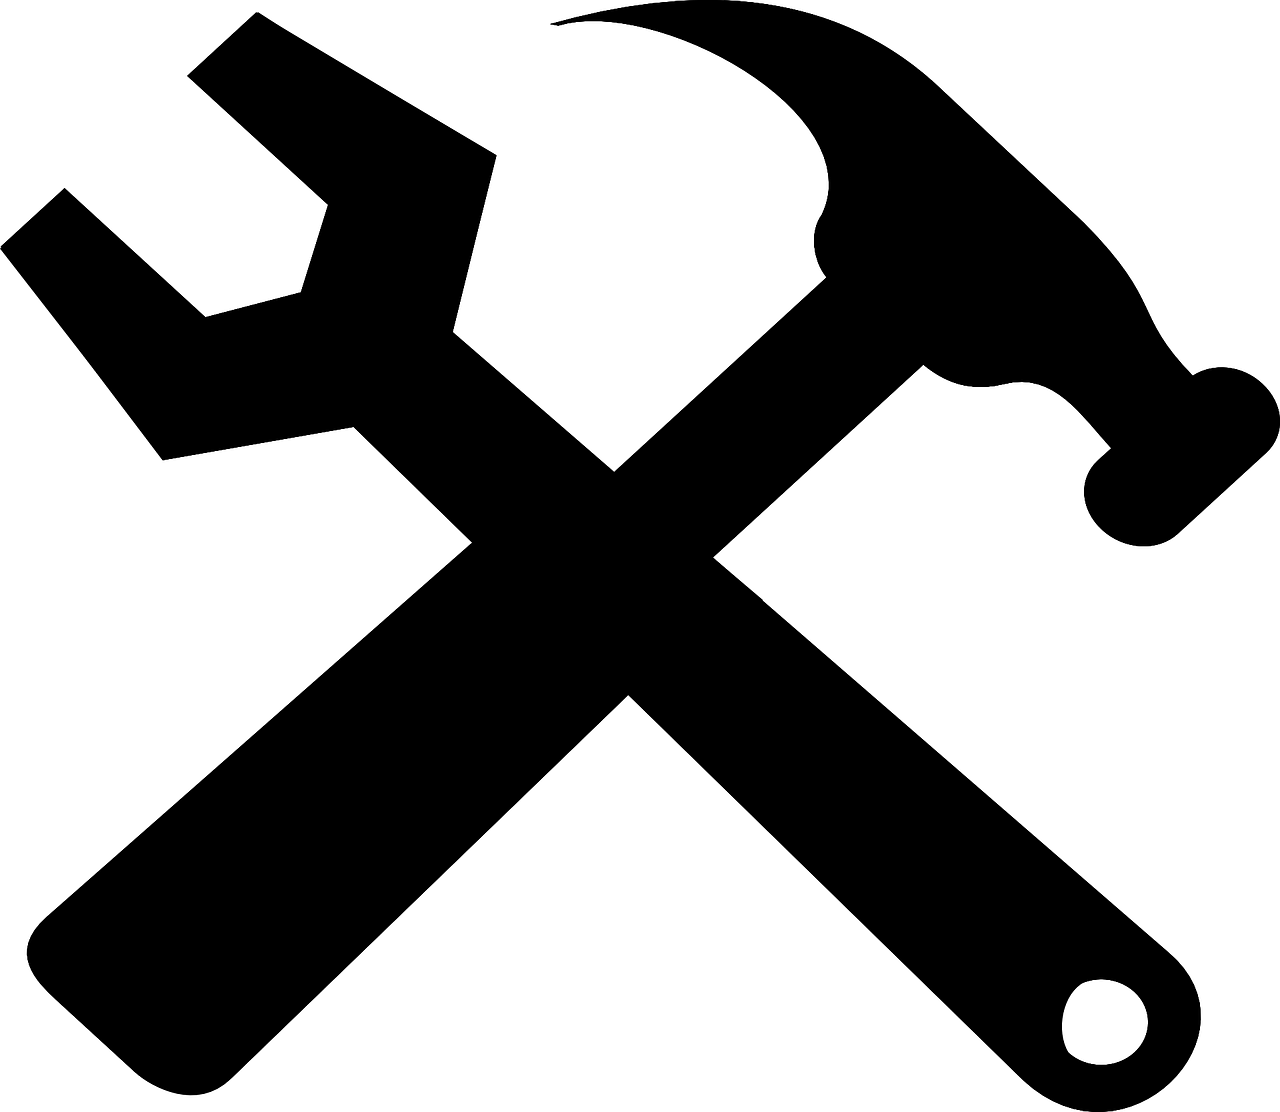 tools, union, worker